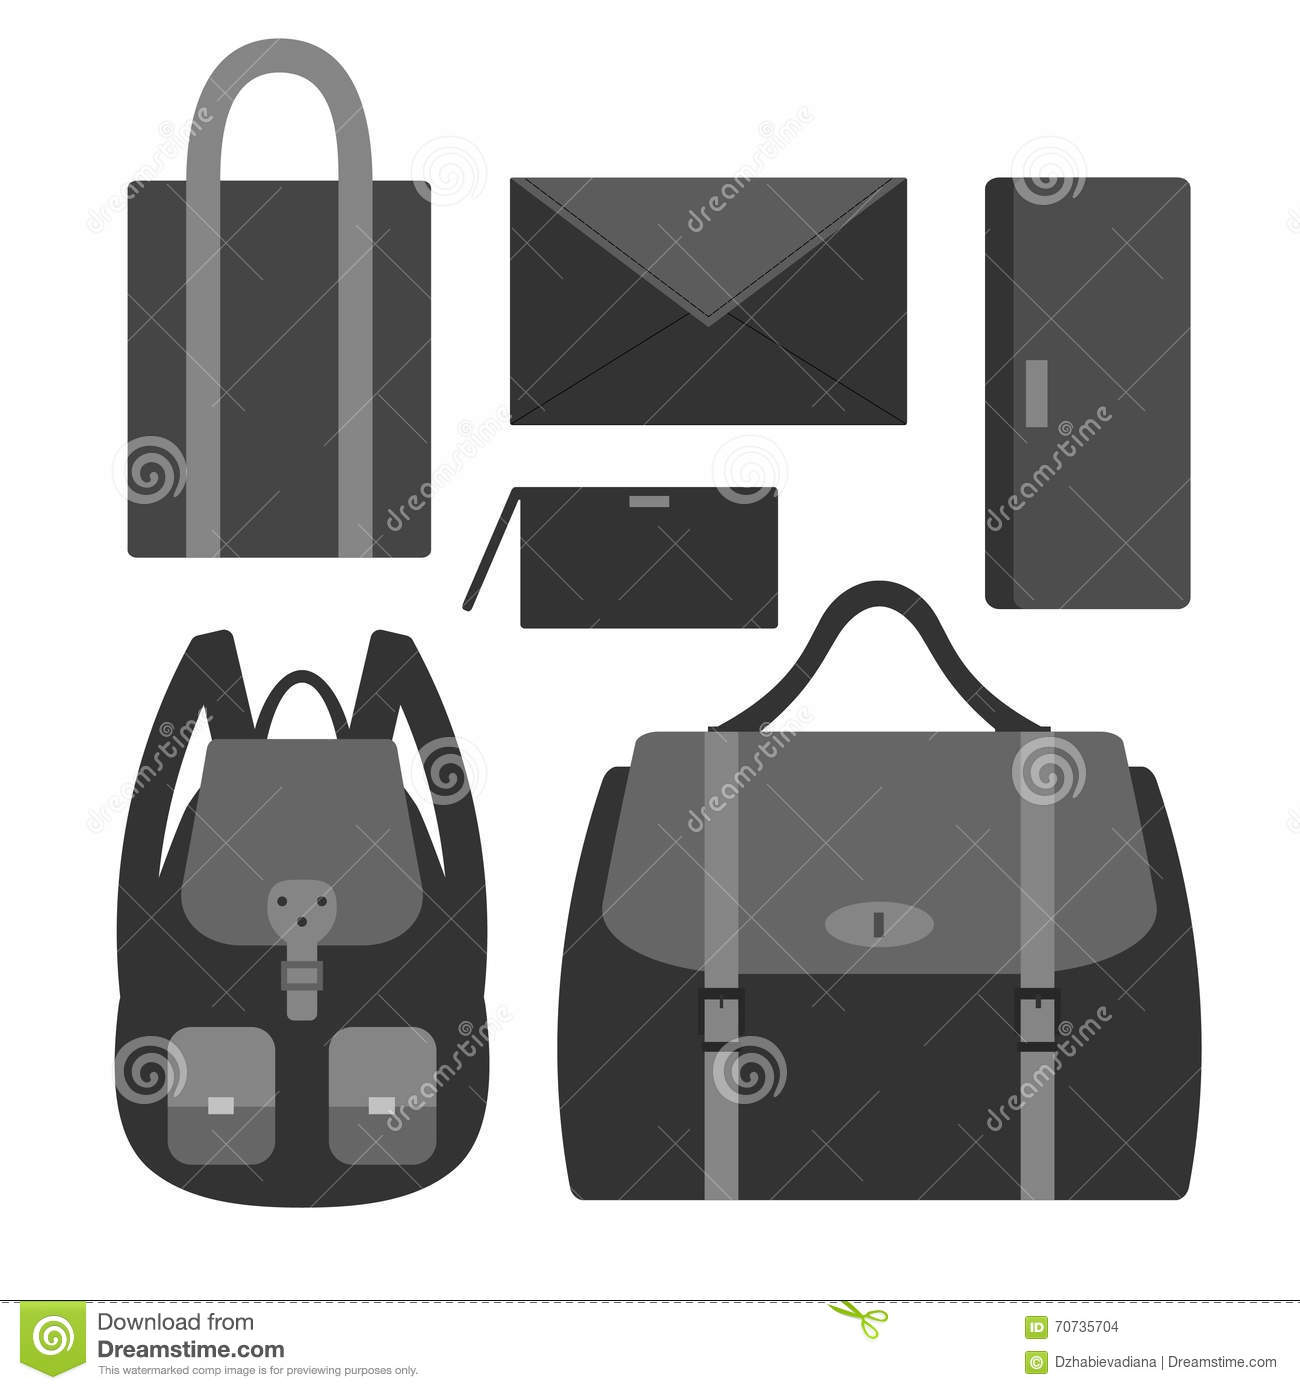 337a54d04a0 Flat female bags icons stock vector. Illustration of accessories ...